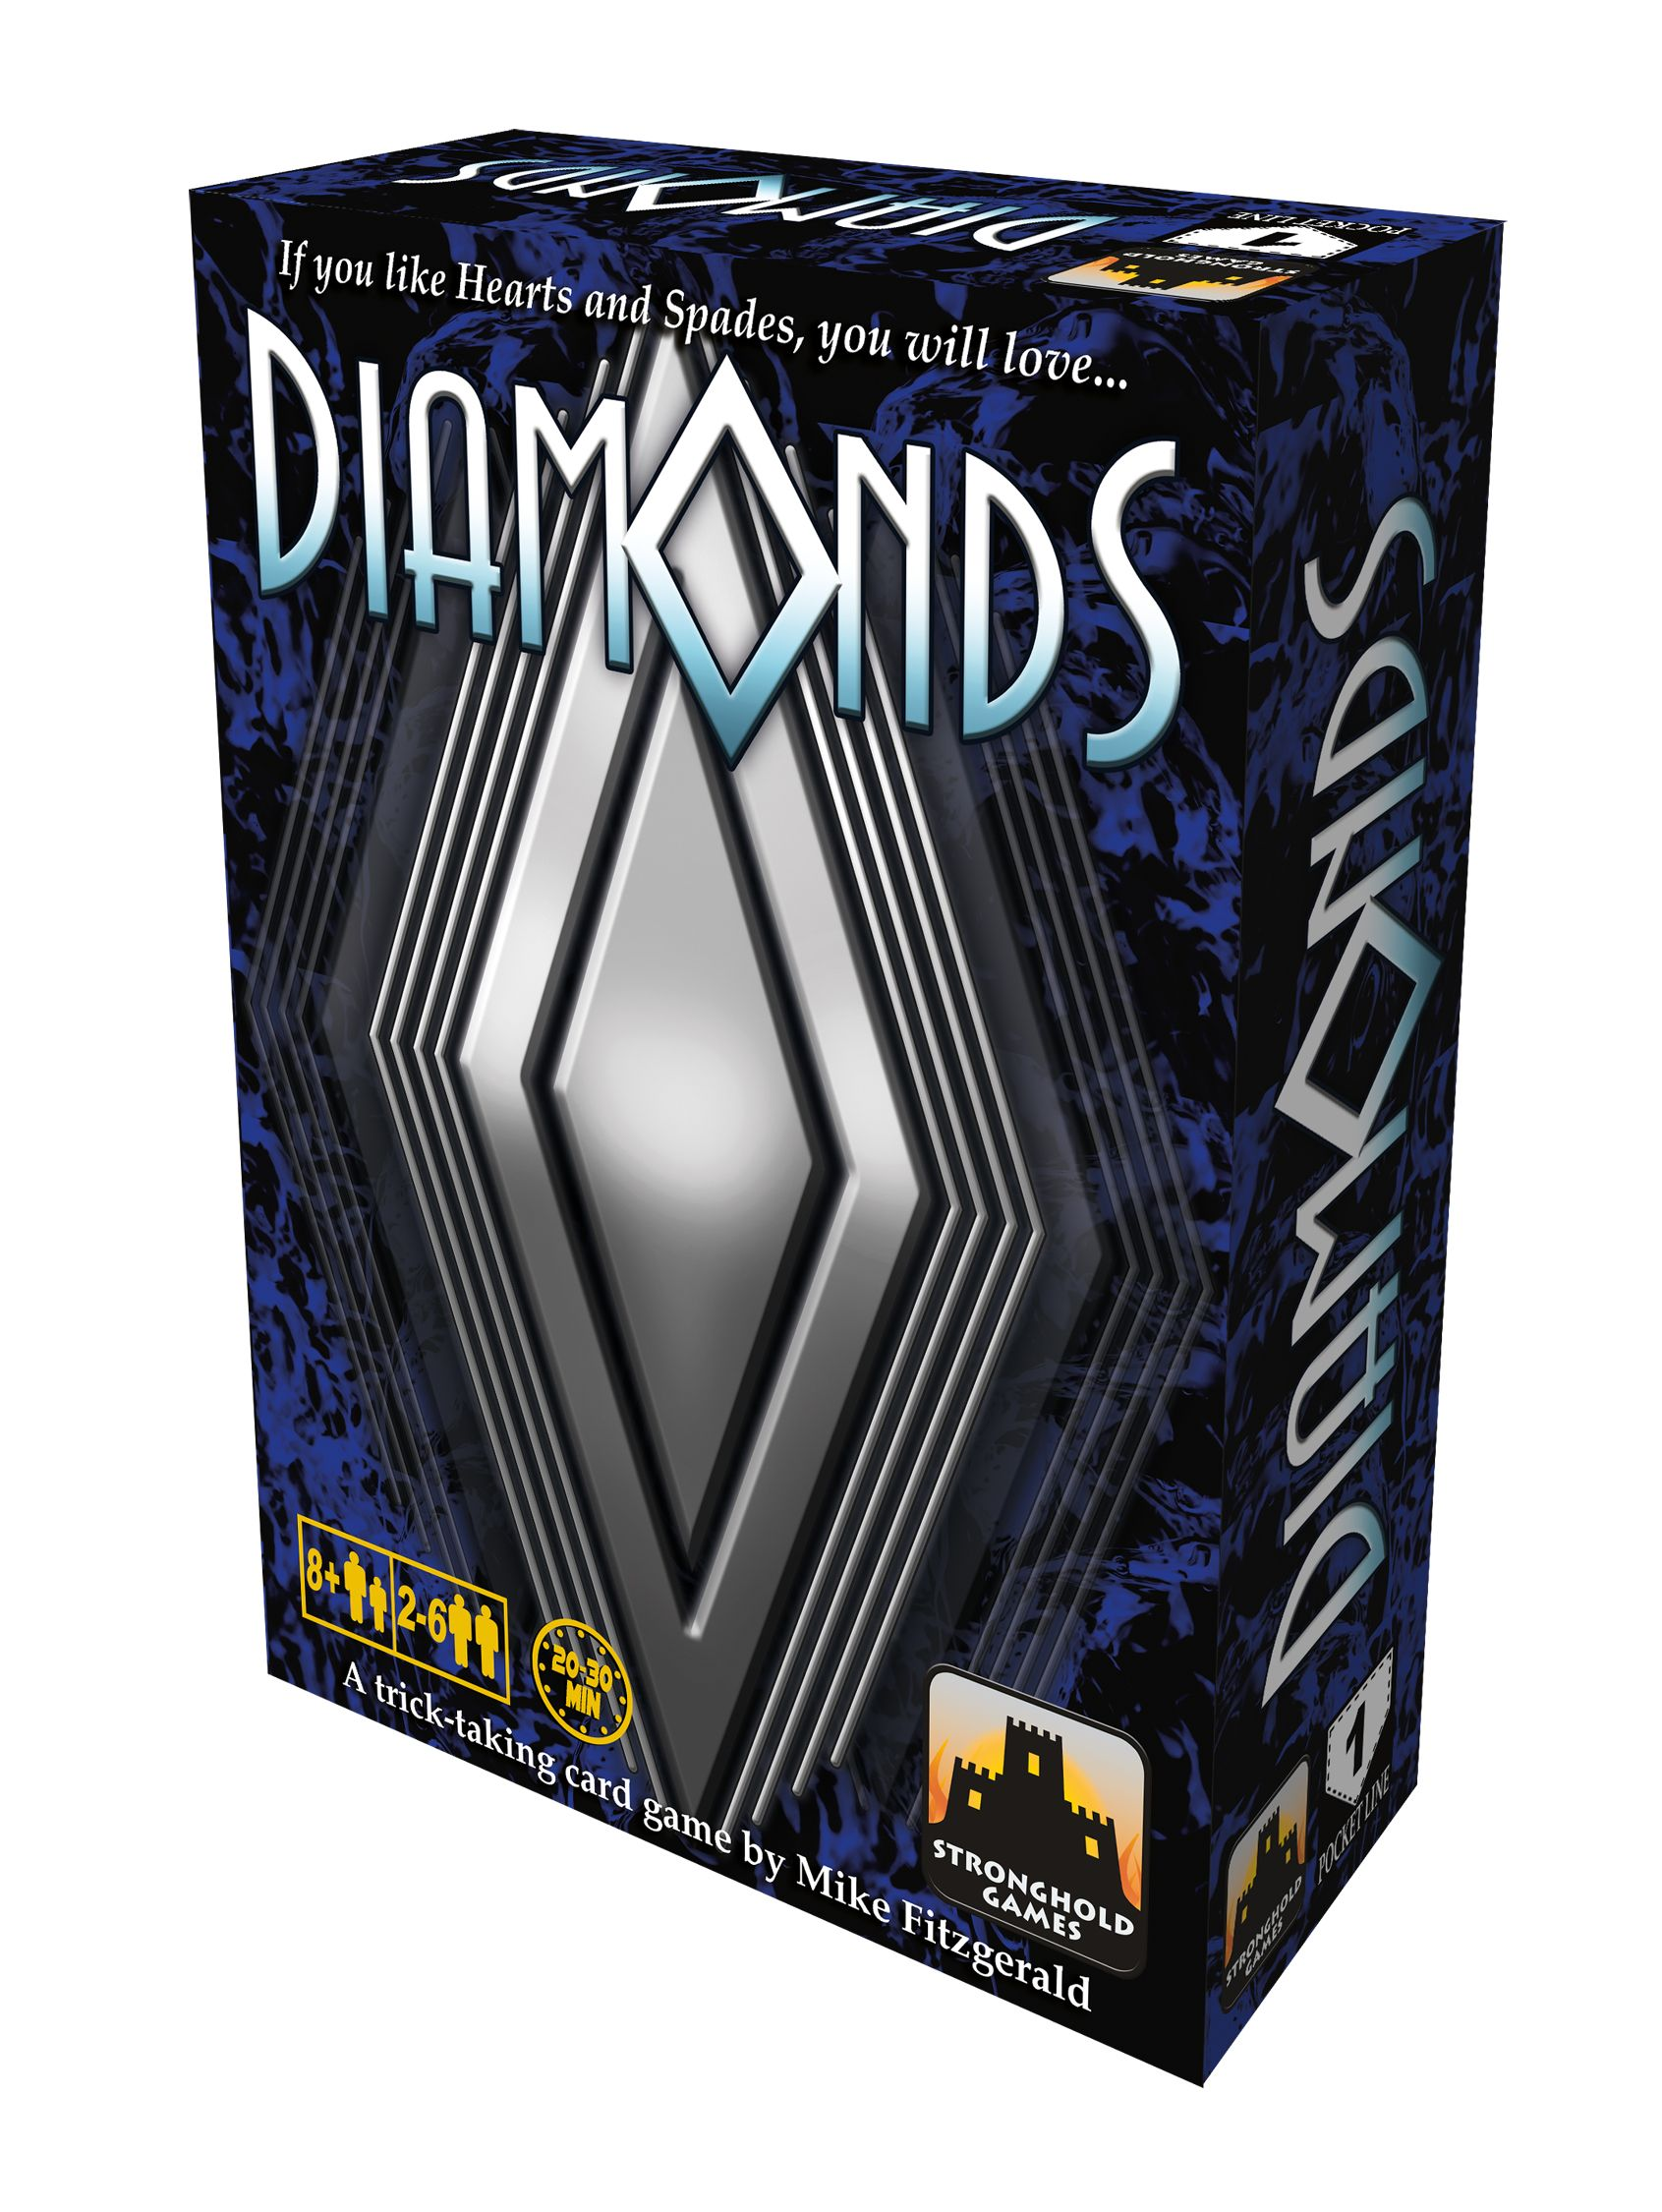 Diamonds buy this when they improve the card art